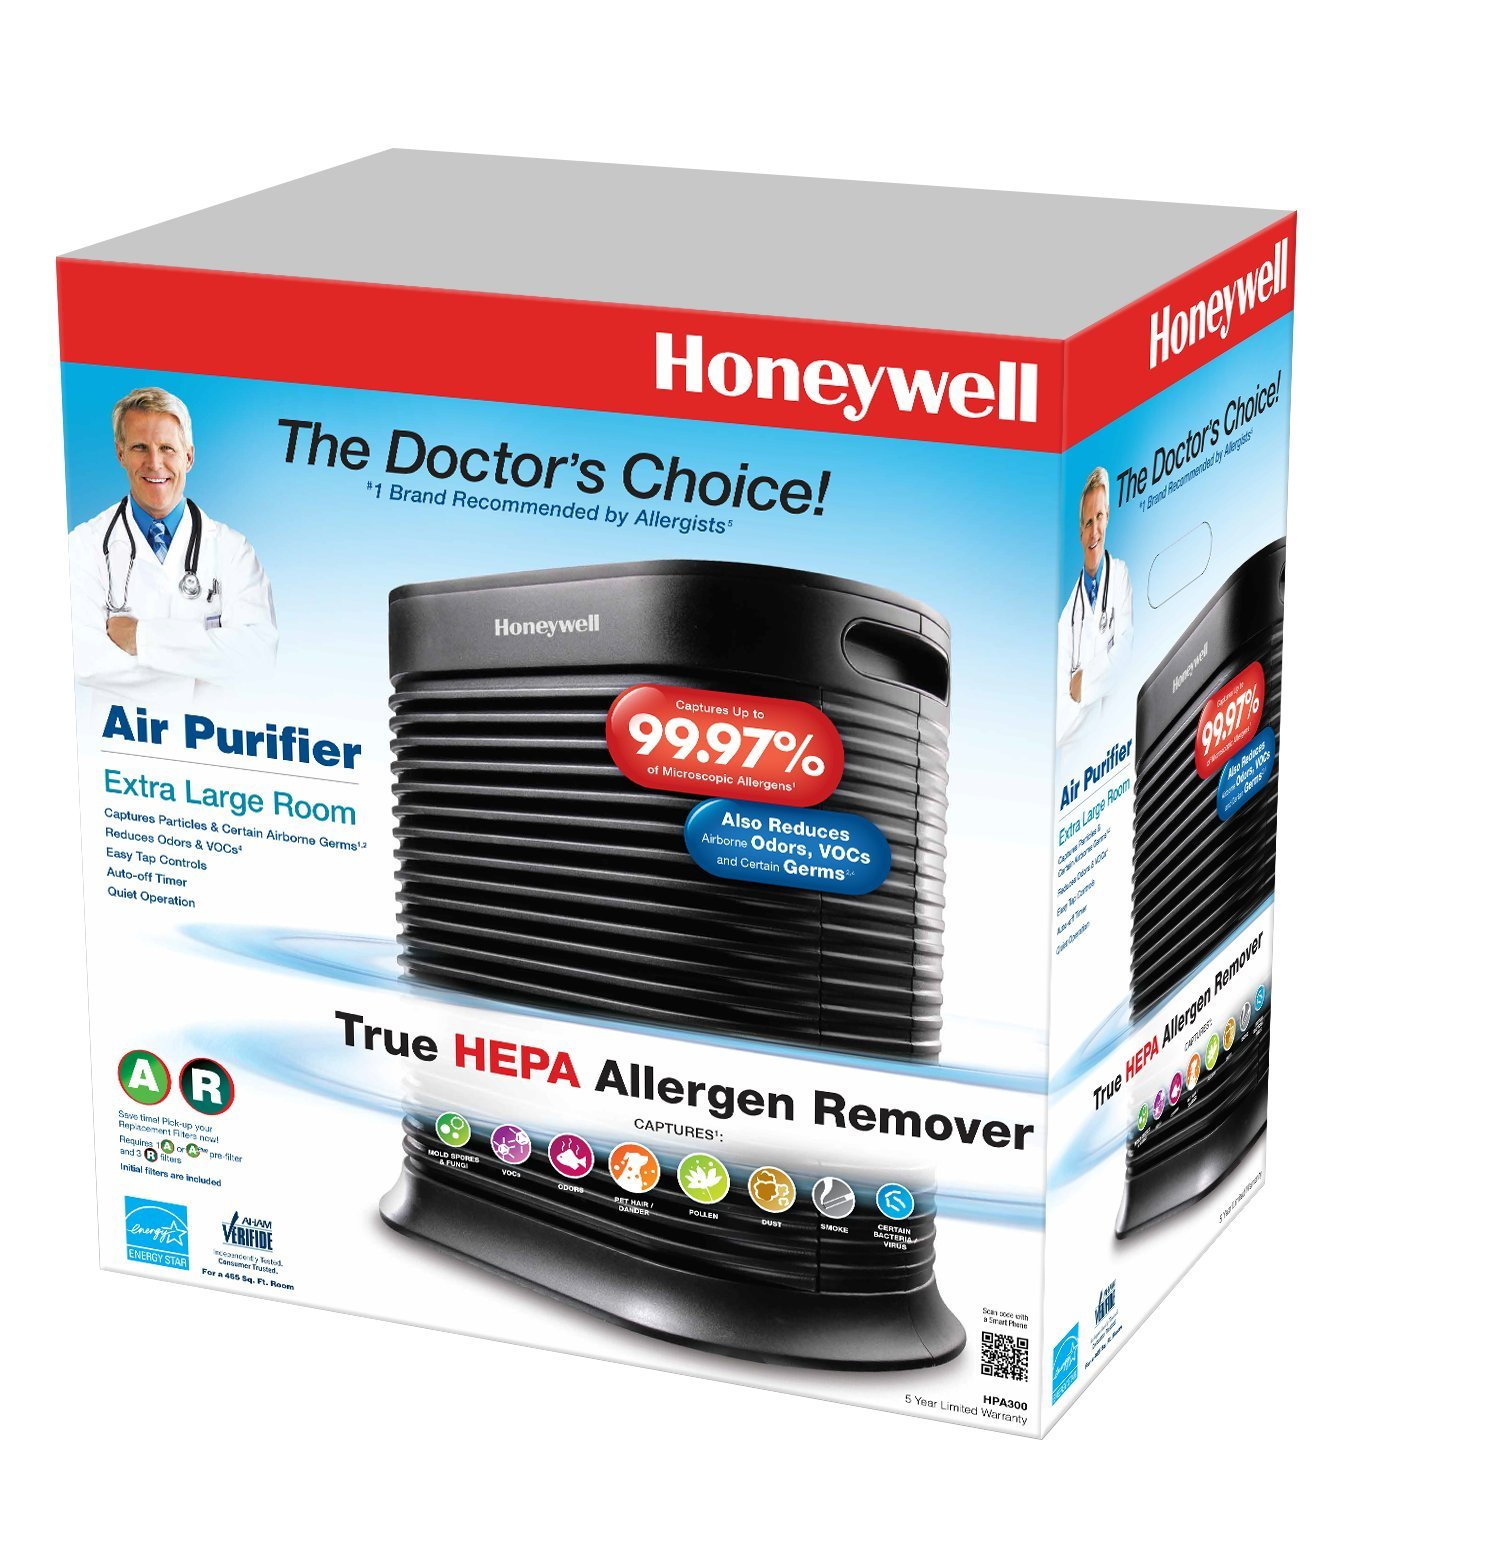 honeywell true hepa allergen remover 465 sq ft hpa300 ebay. Black Bedroom Furniture Sets. Home Design Ideas